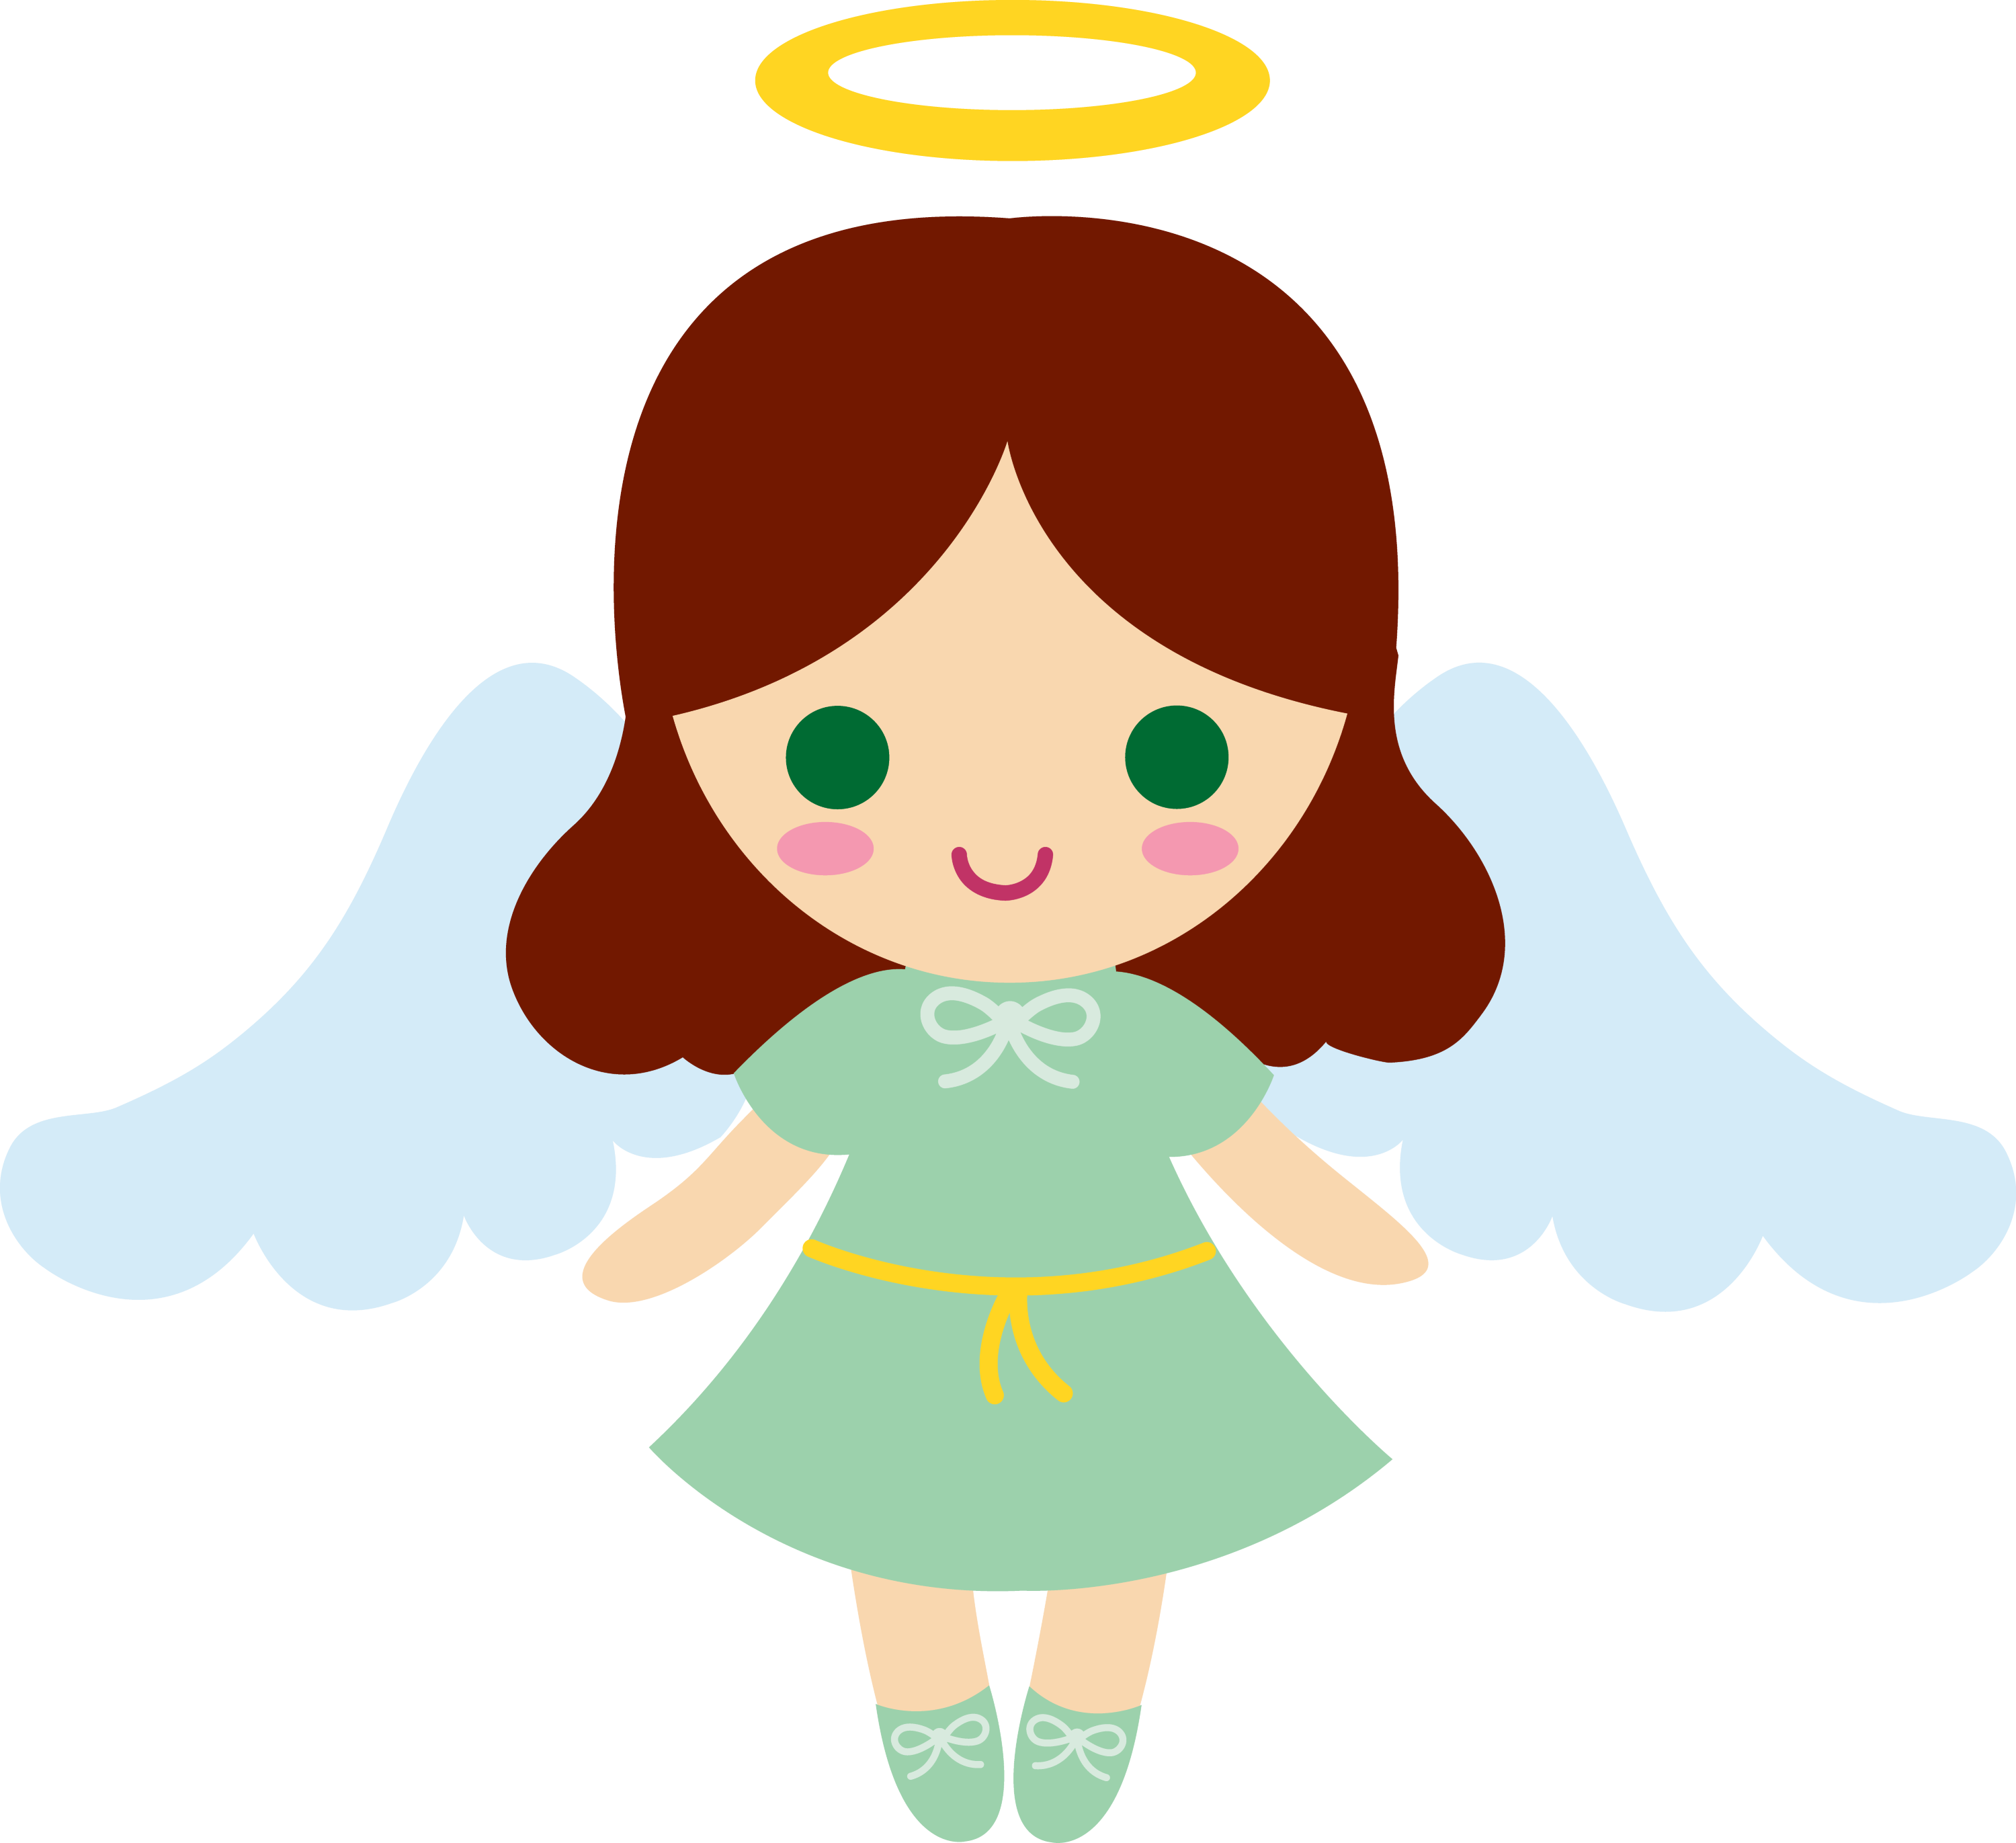 free clipart images of angels - photo #28